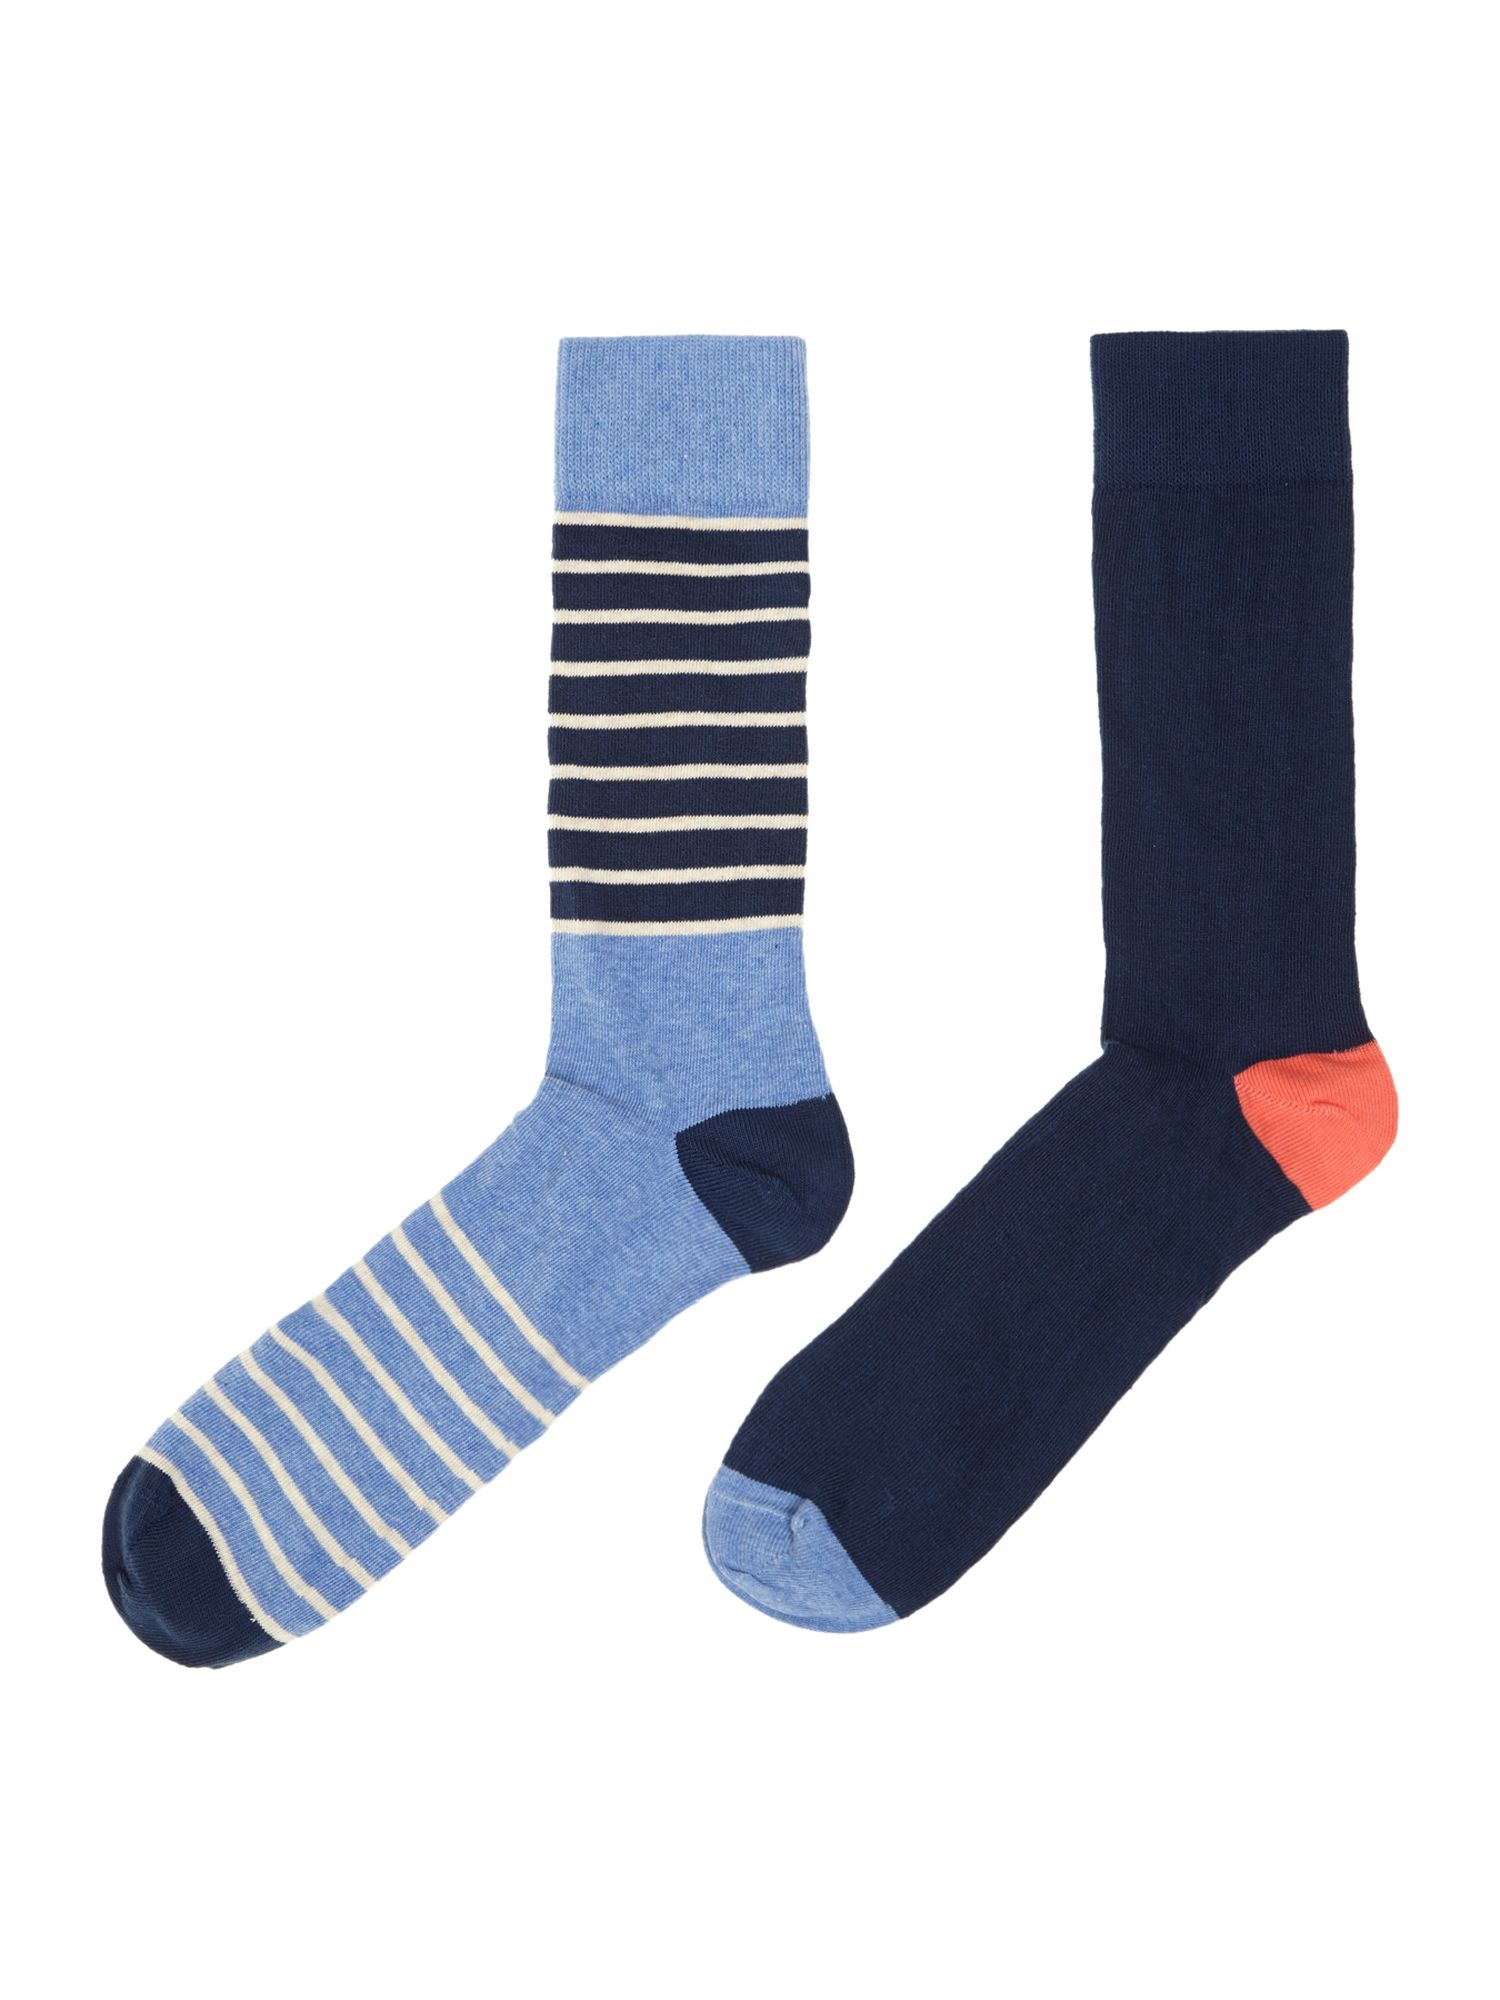 2 pack block stripe socks